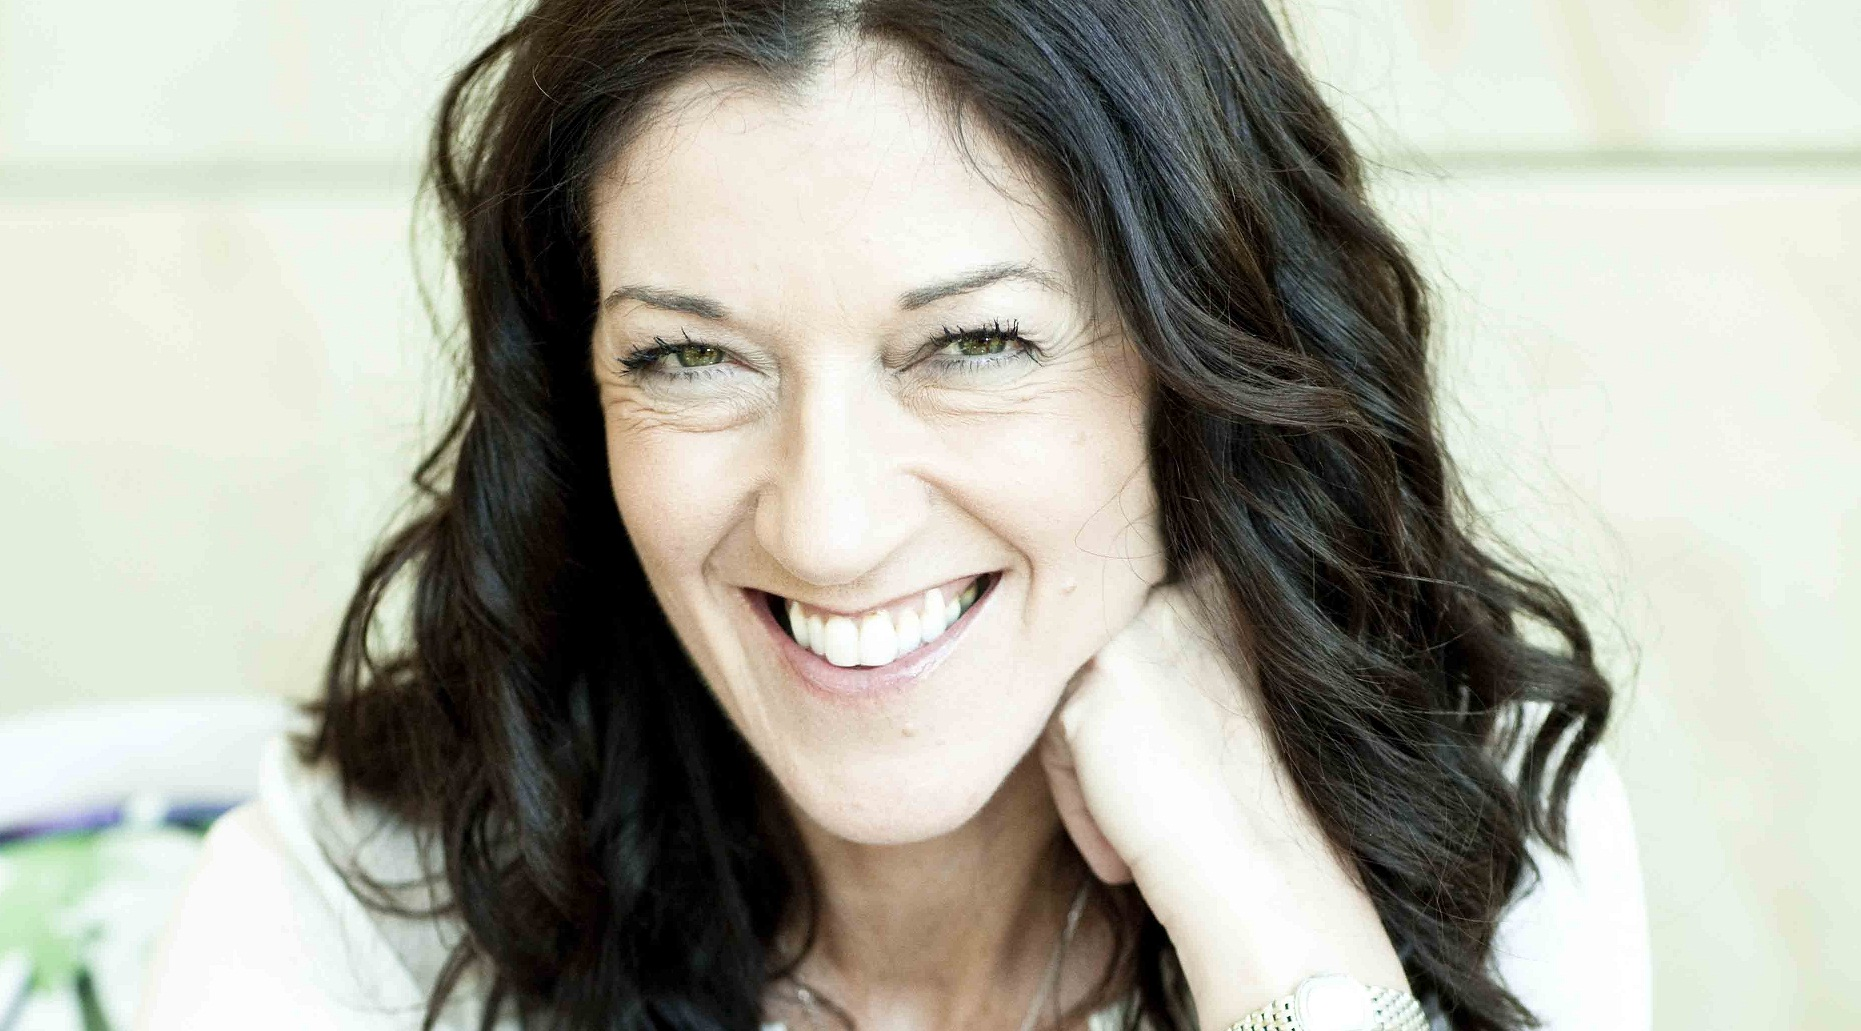 victoria hislop 2017-7-5  victoria hislop read english at st hilda's college, oxford, and writes travel features for the sunday telegraph, the mail on sunday, and woman .